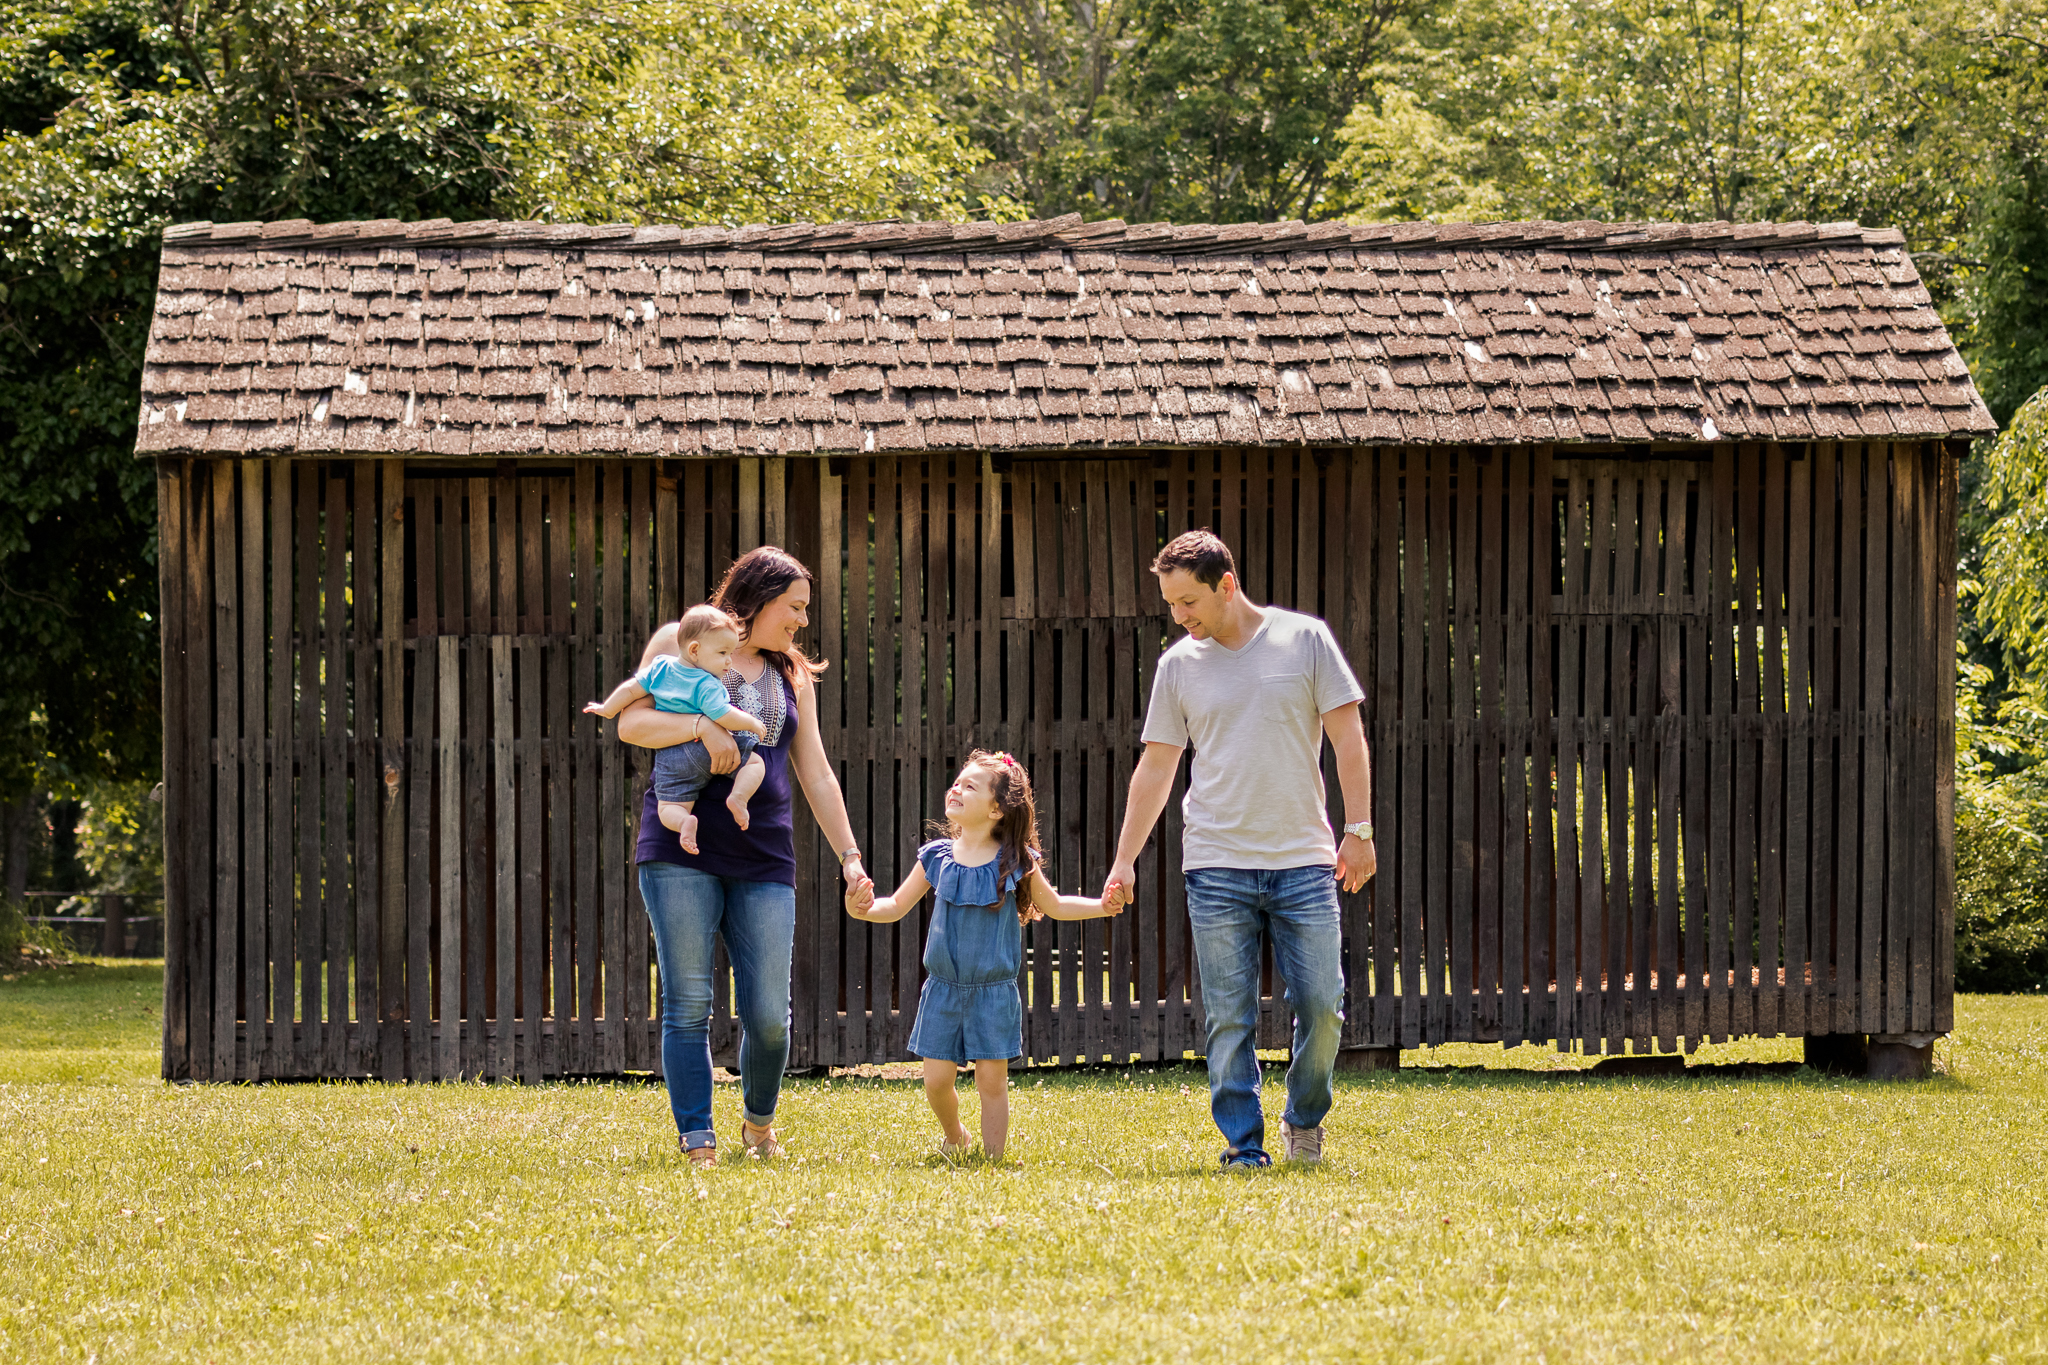 Nancy Elizabeth Photography, New Jersey Photographer, Family Walking Rustic Background